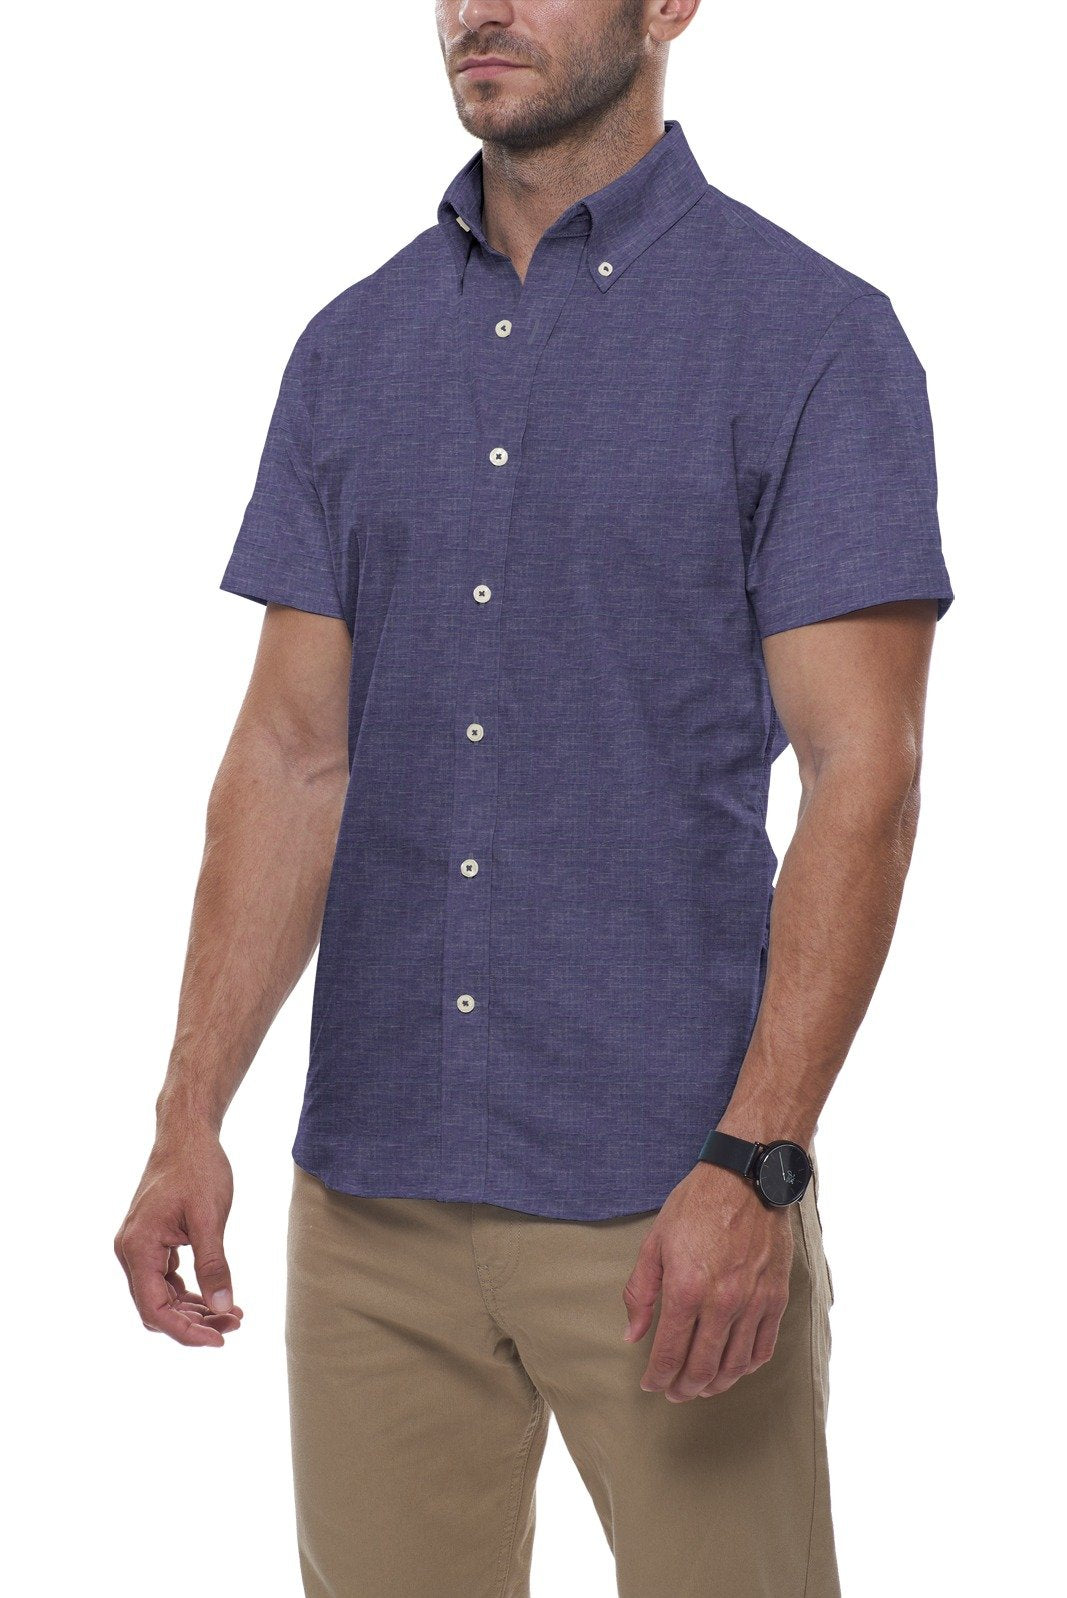 Indigo Summer Linen: Semi-Spread Collar, Short Sleeve